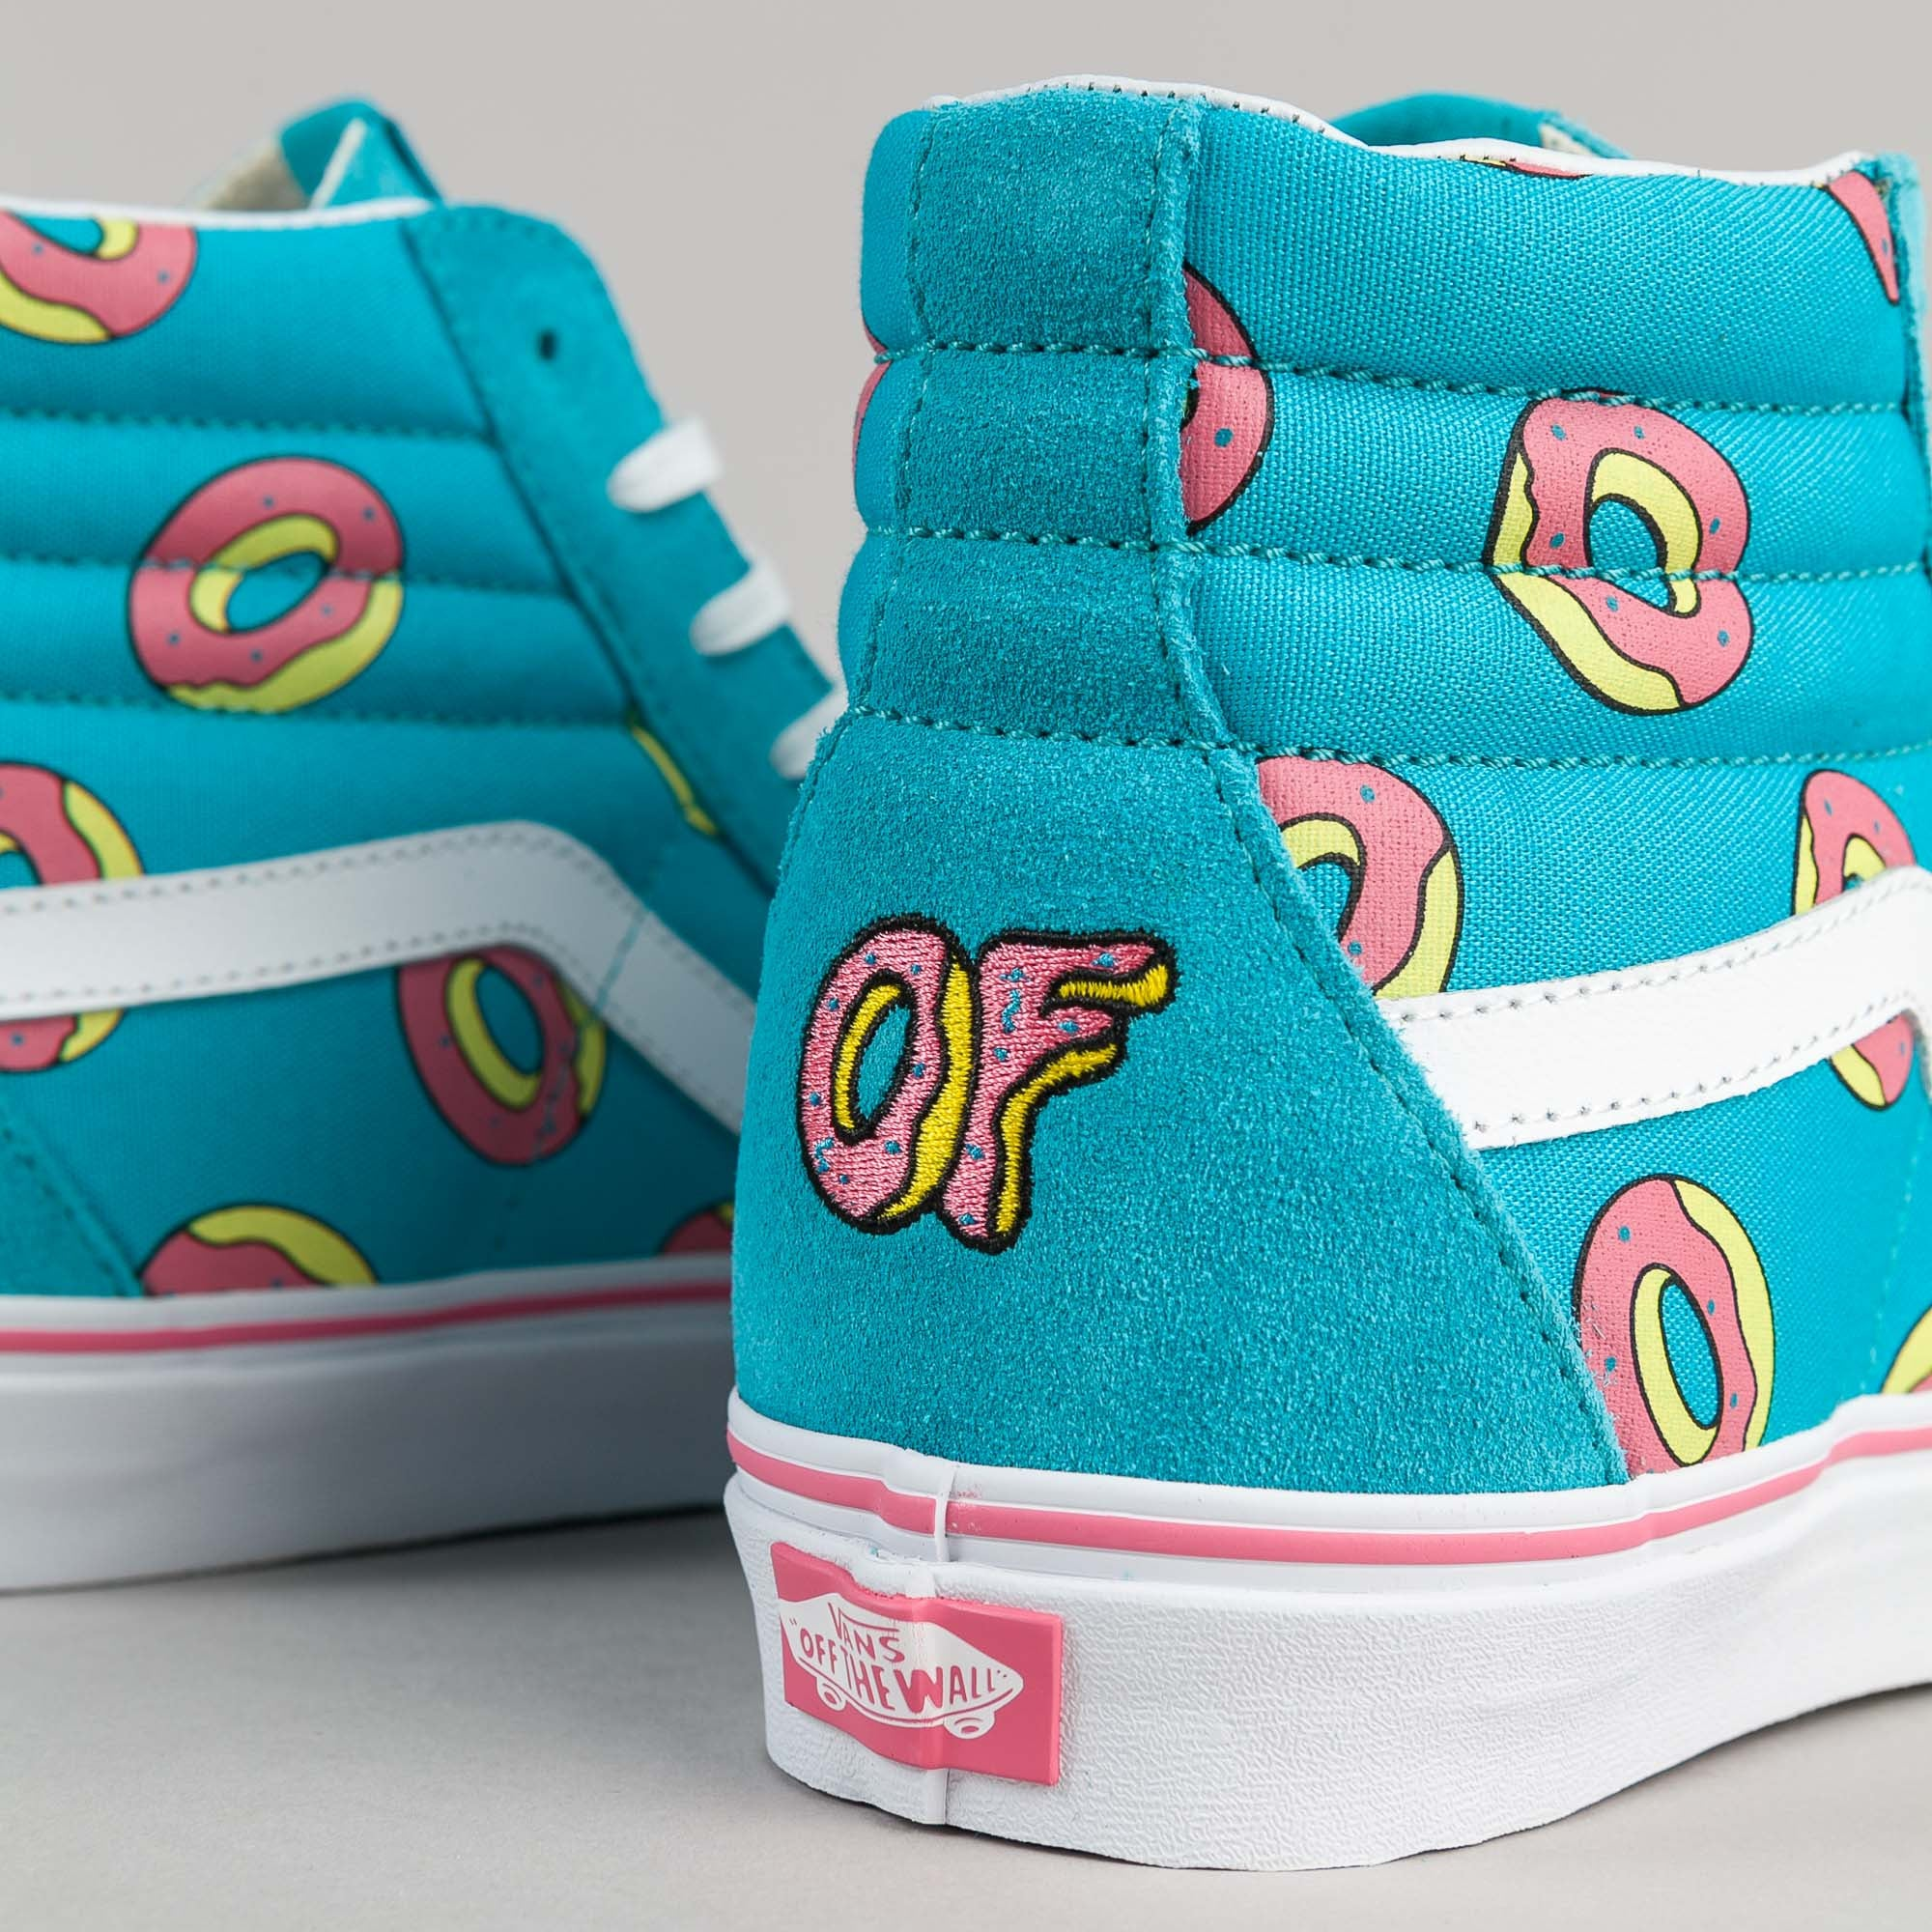 eb476152a8b vans odd future sk8 hi scuba blue donut shoe for whole family 0b57c ...